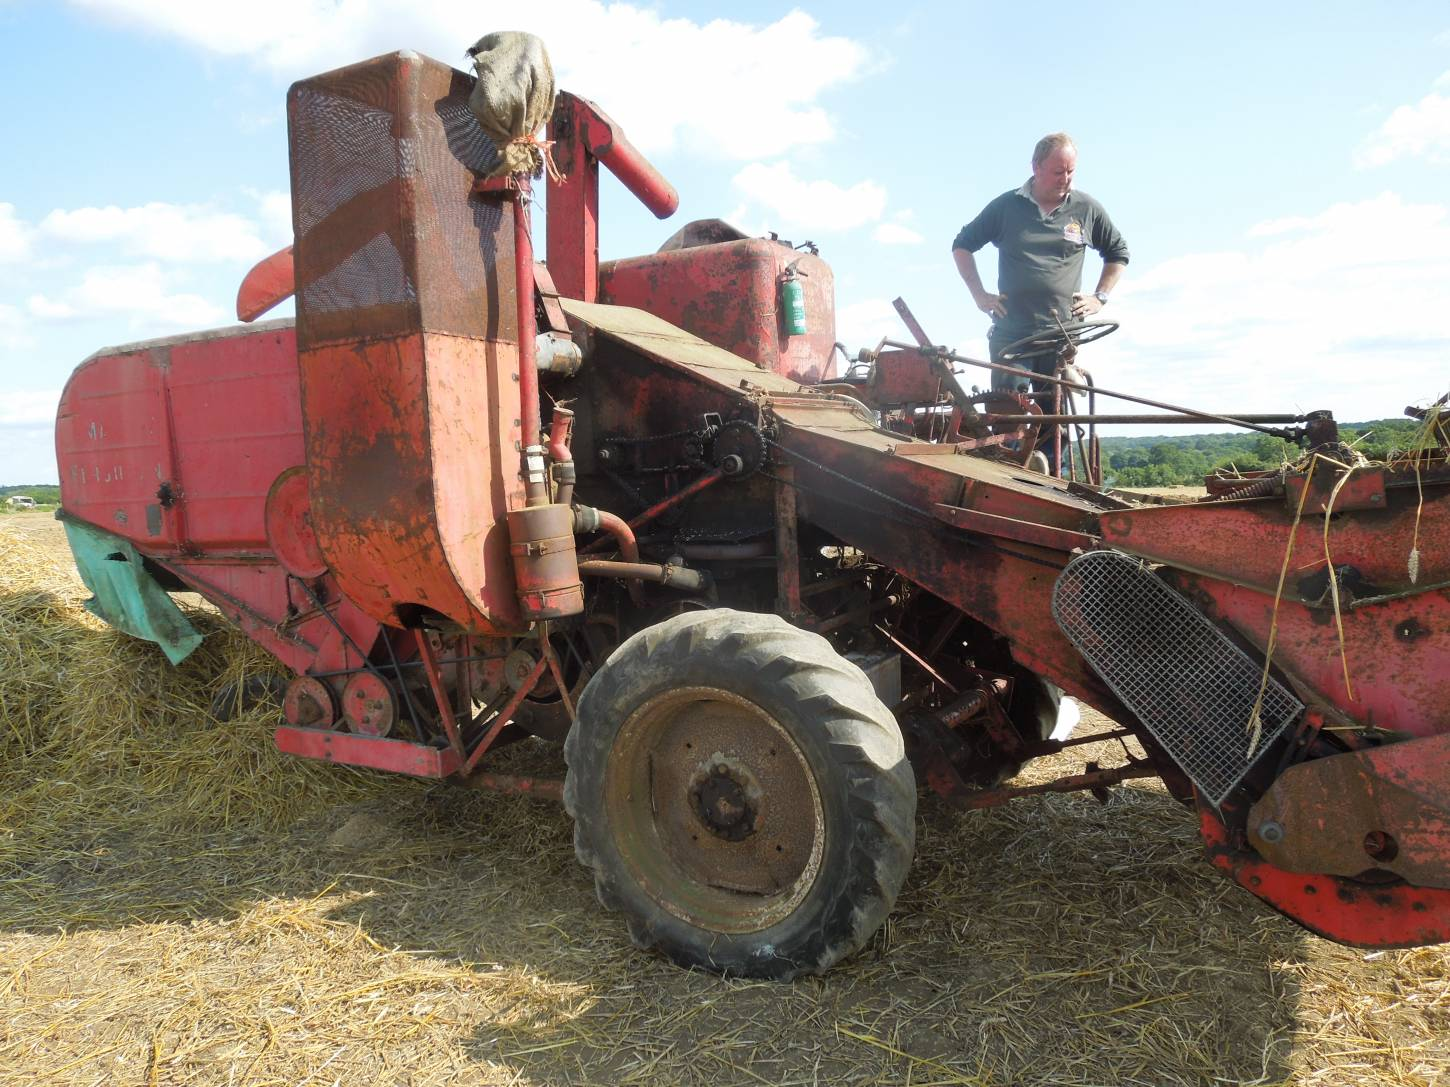 threshing Kent Old Hoary at Townings Farm vintage agricultural show - 3:10pm&nbsp;6<sup>th</sup>&nbsp;Sep.&nbsp;'15